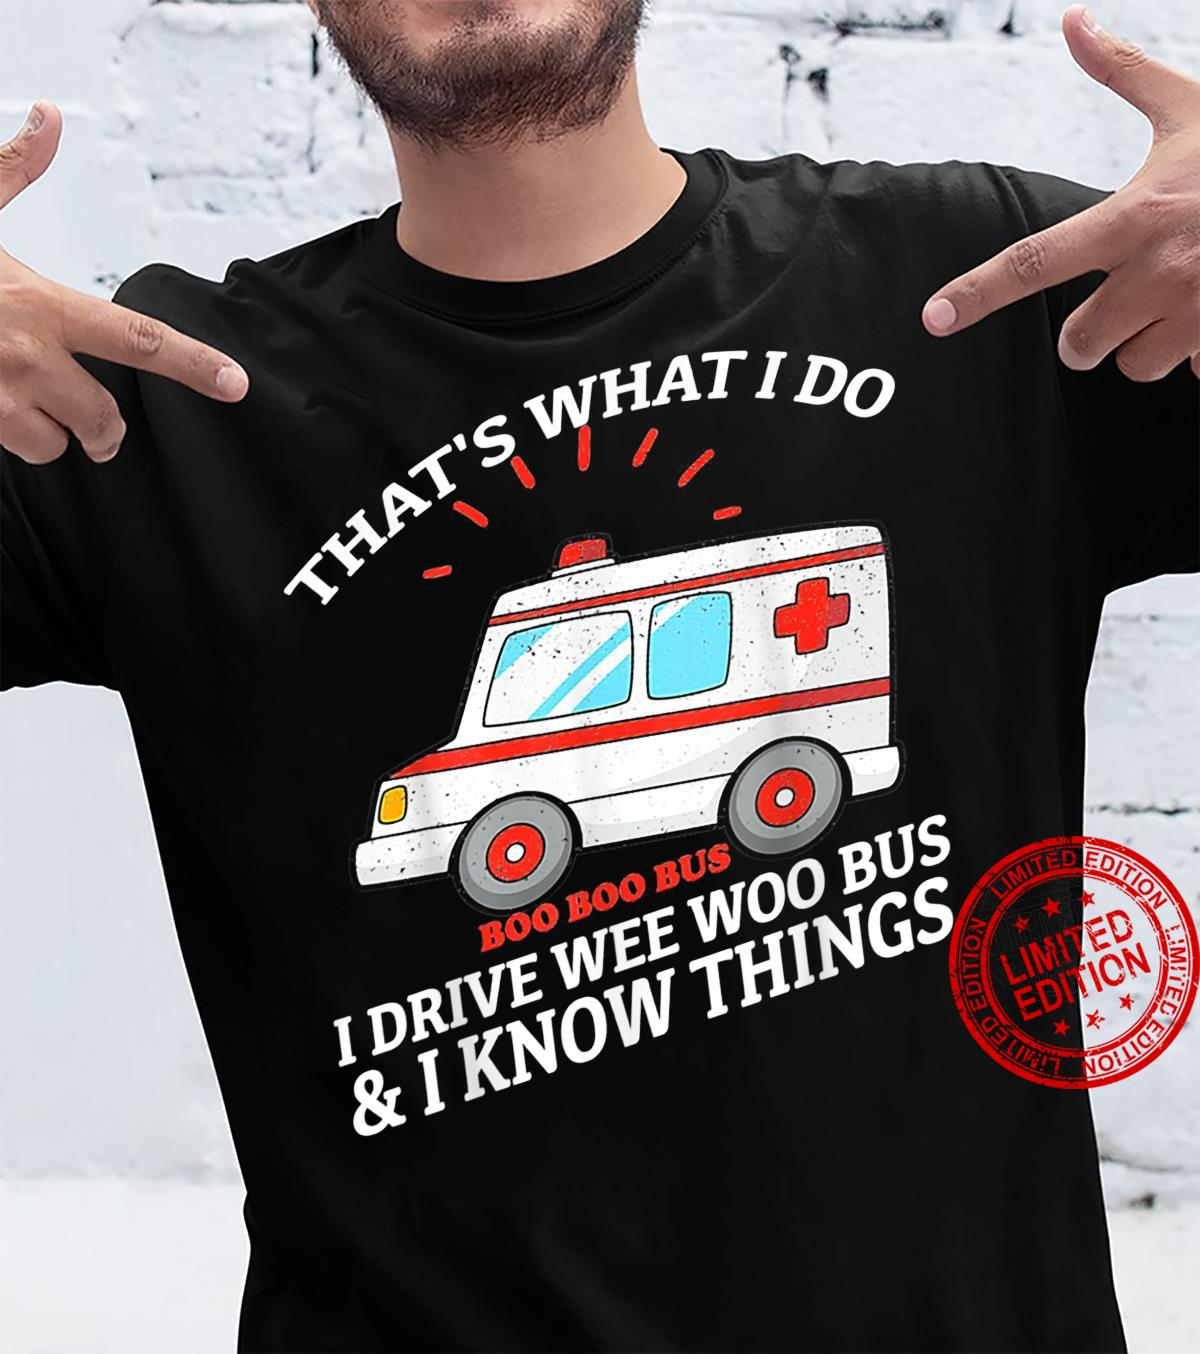 That's What I Do I Drive Wee Woo Bus Shirt